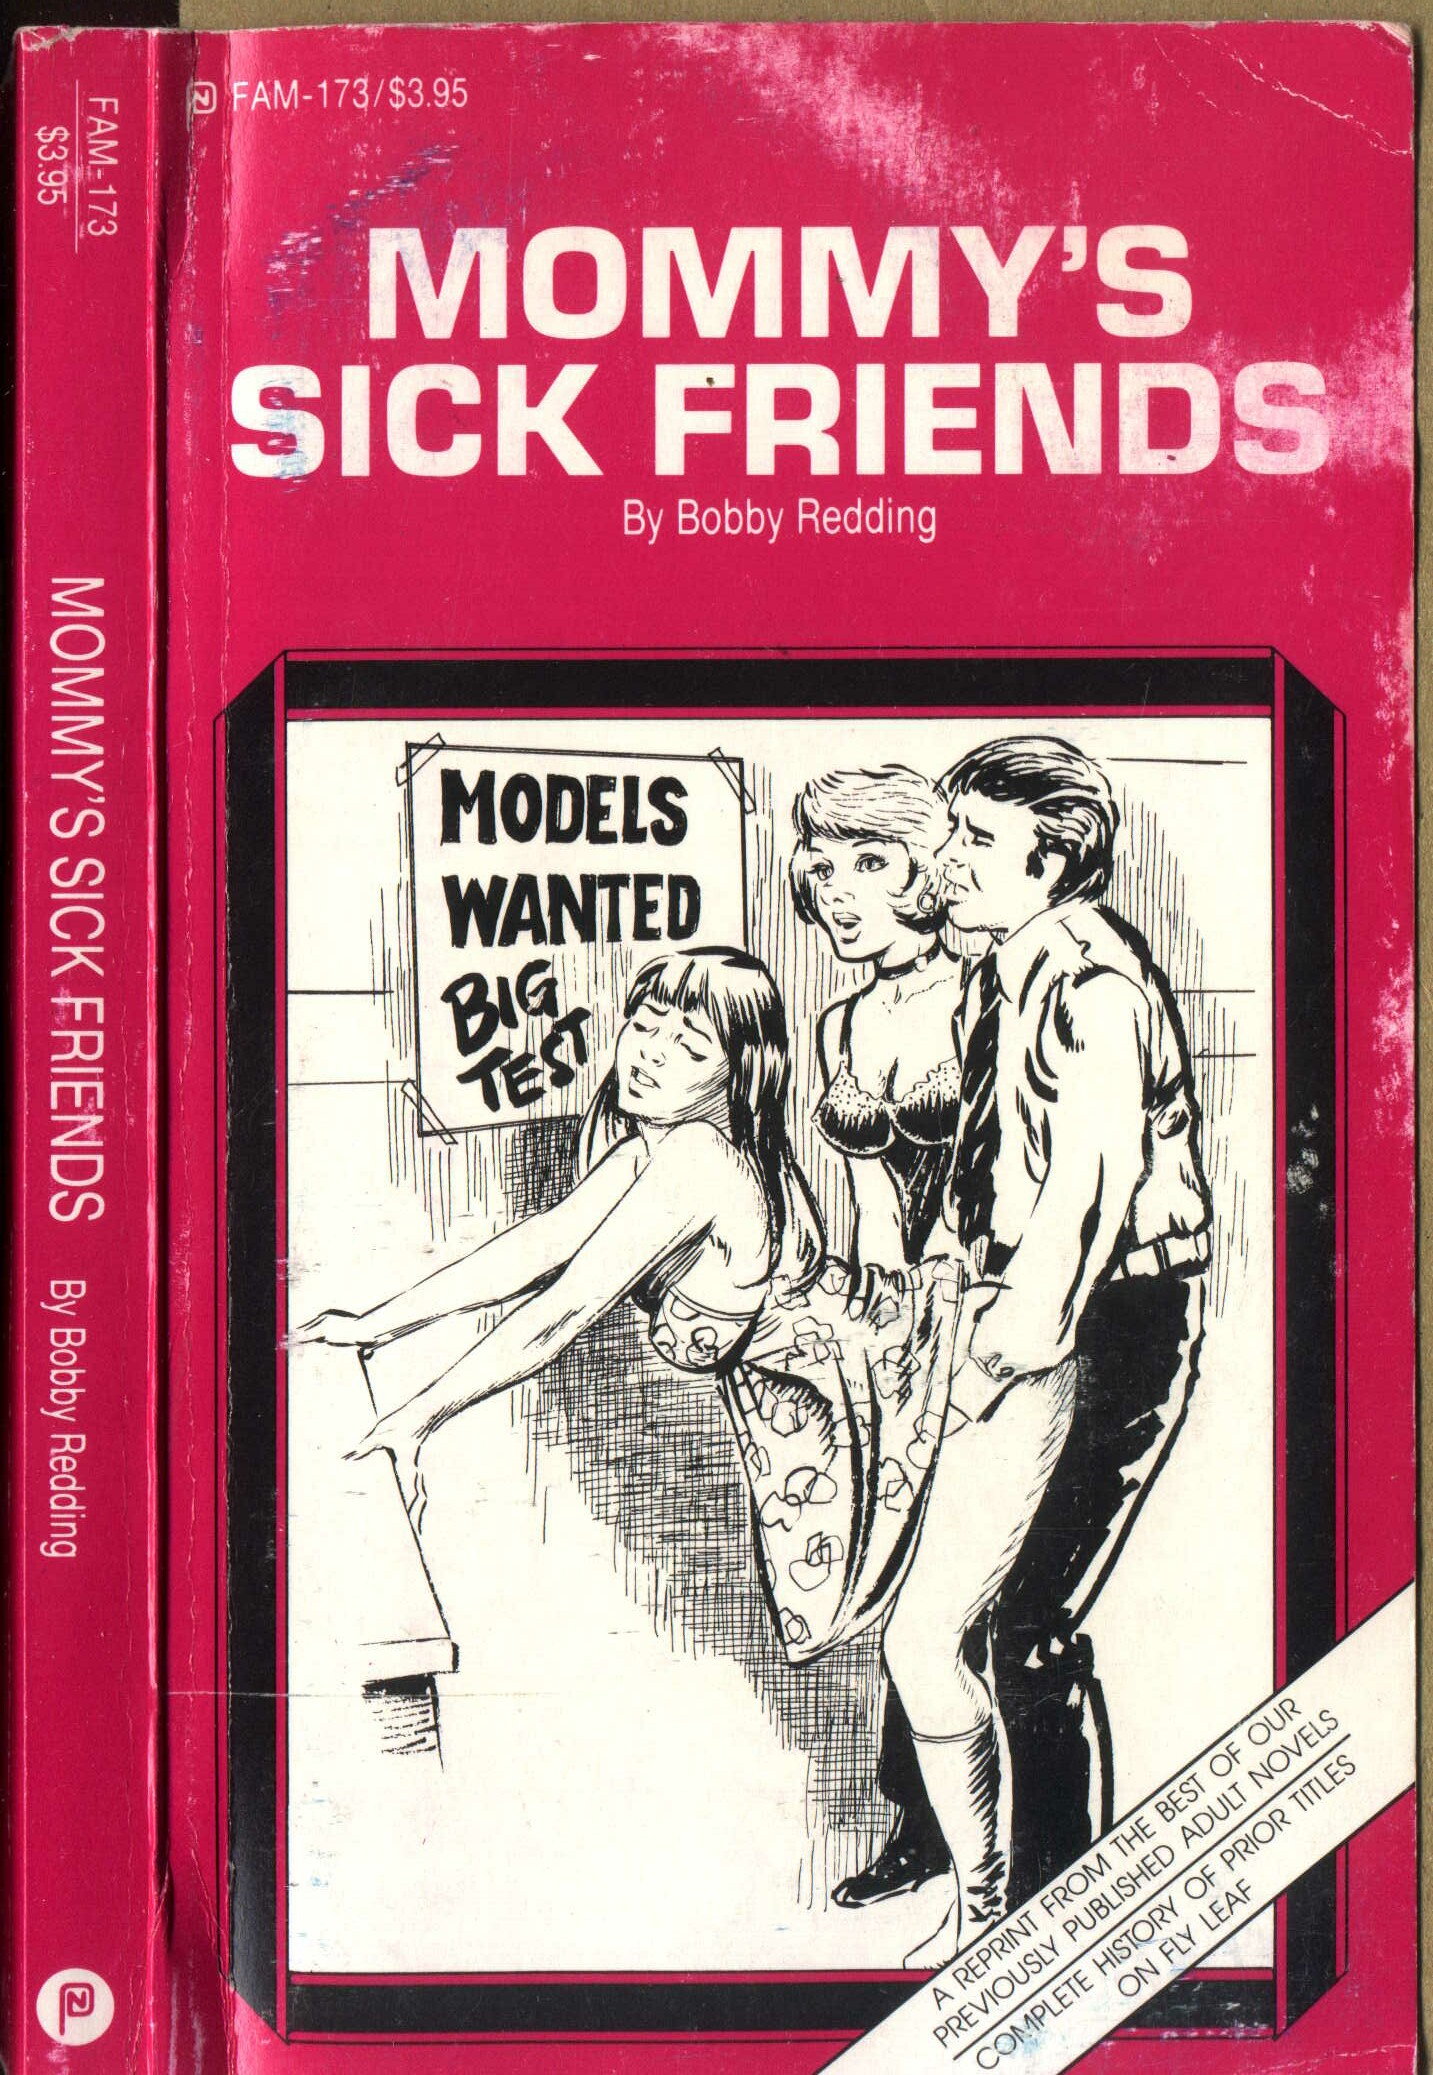 Скачать fb2 книгу: Mommy_s sick friends